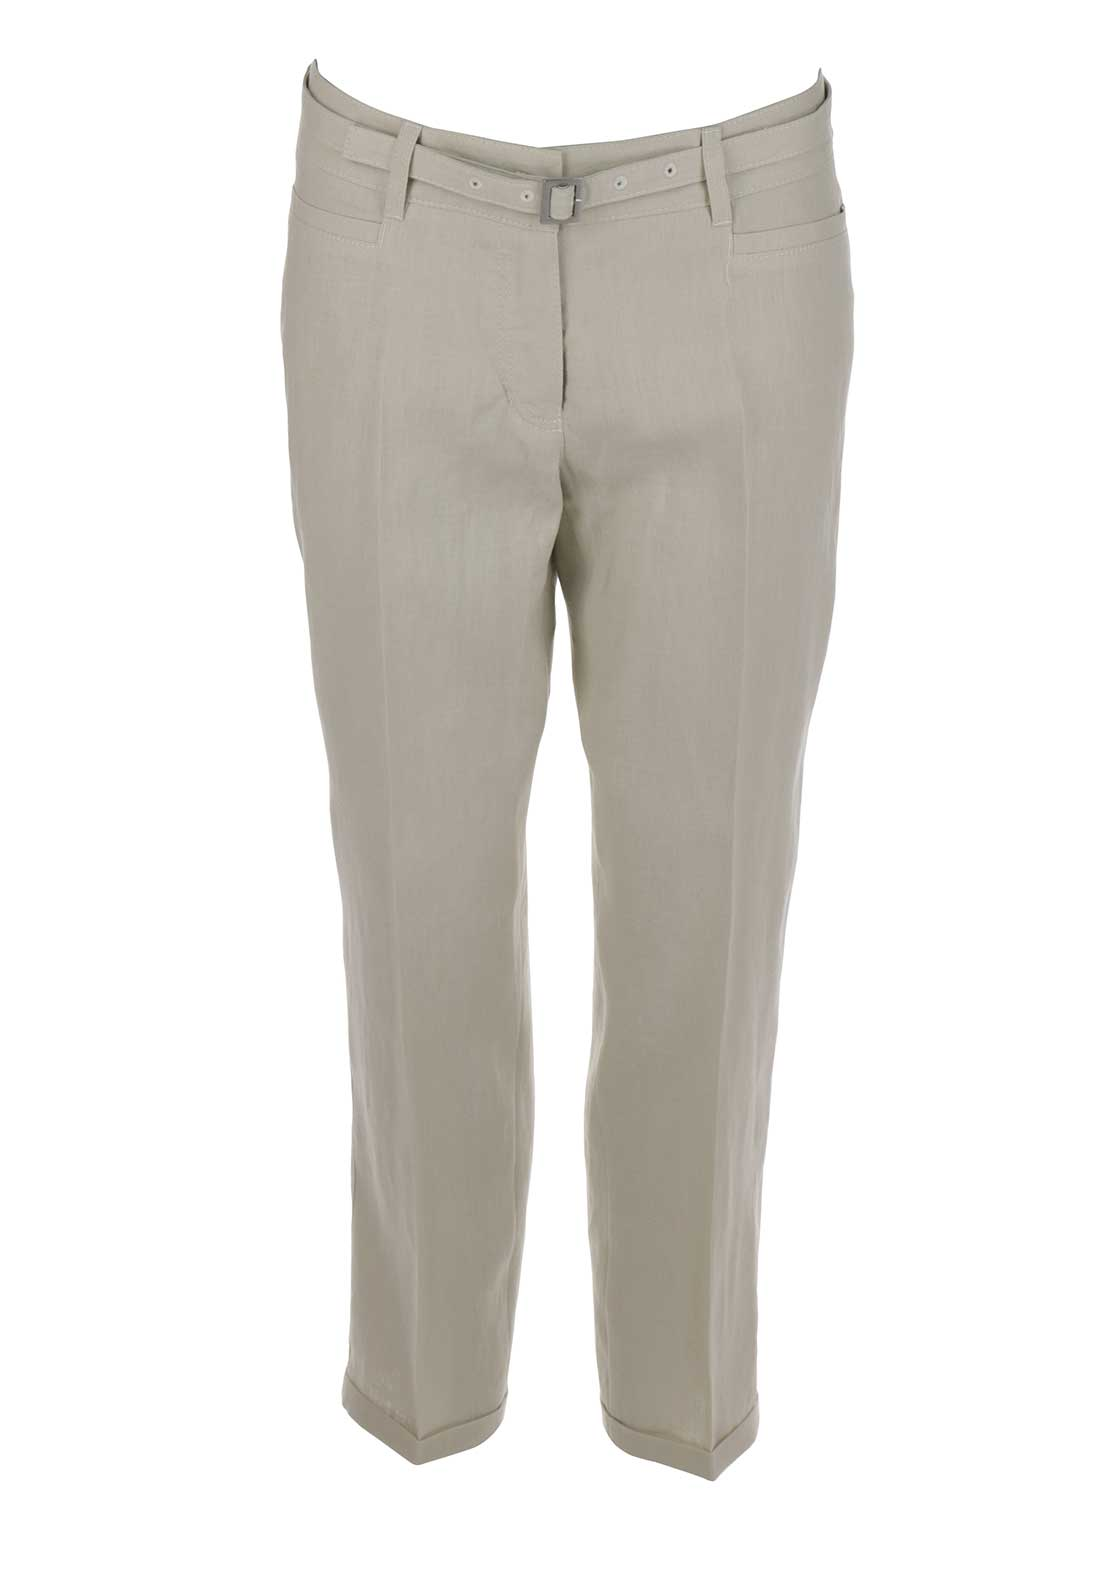 Gerry Weber Vicky Loose Fit Cropped Linen Trousers, Beige